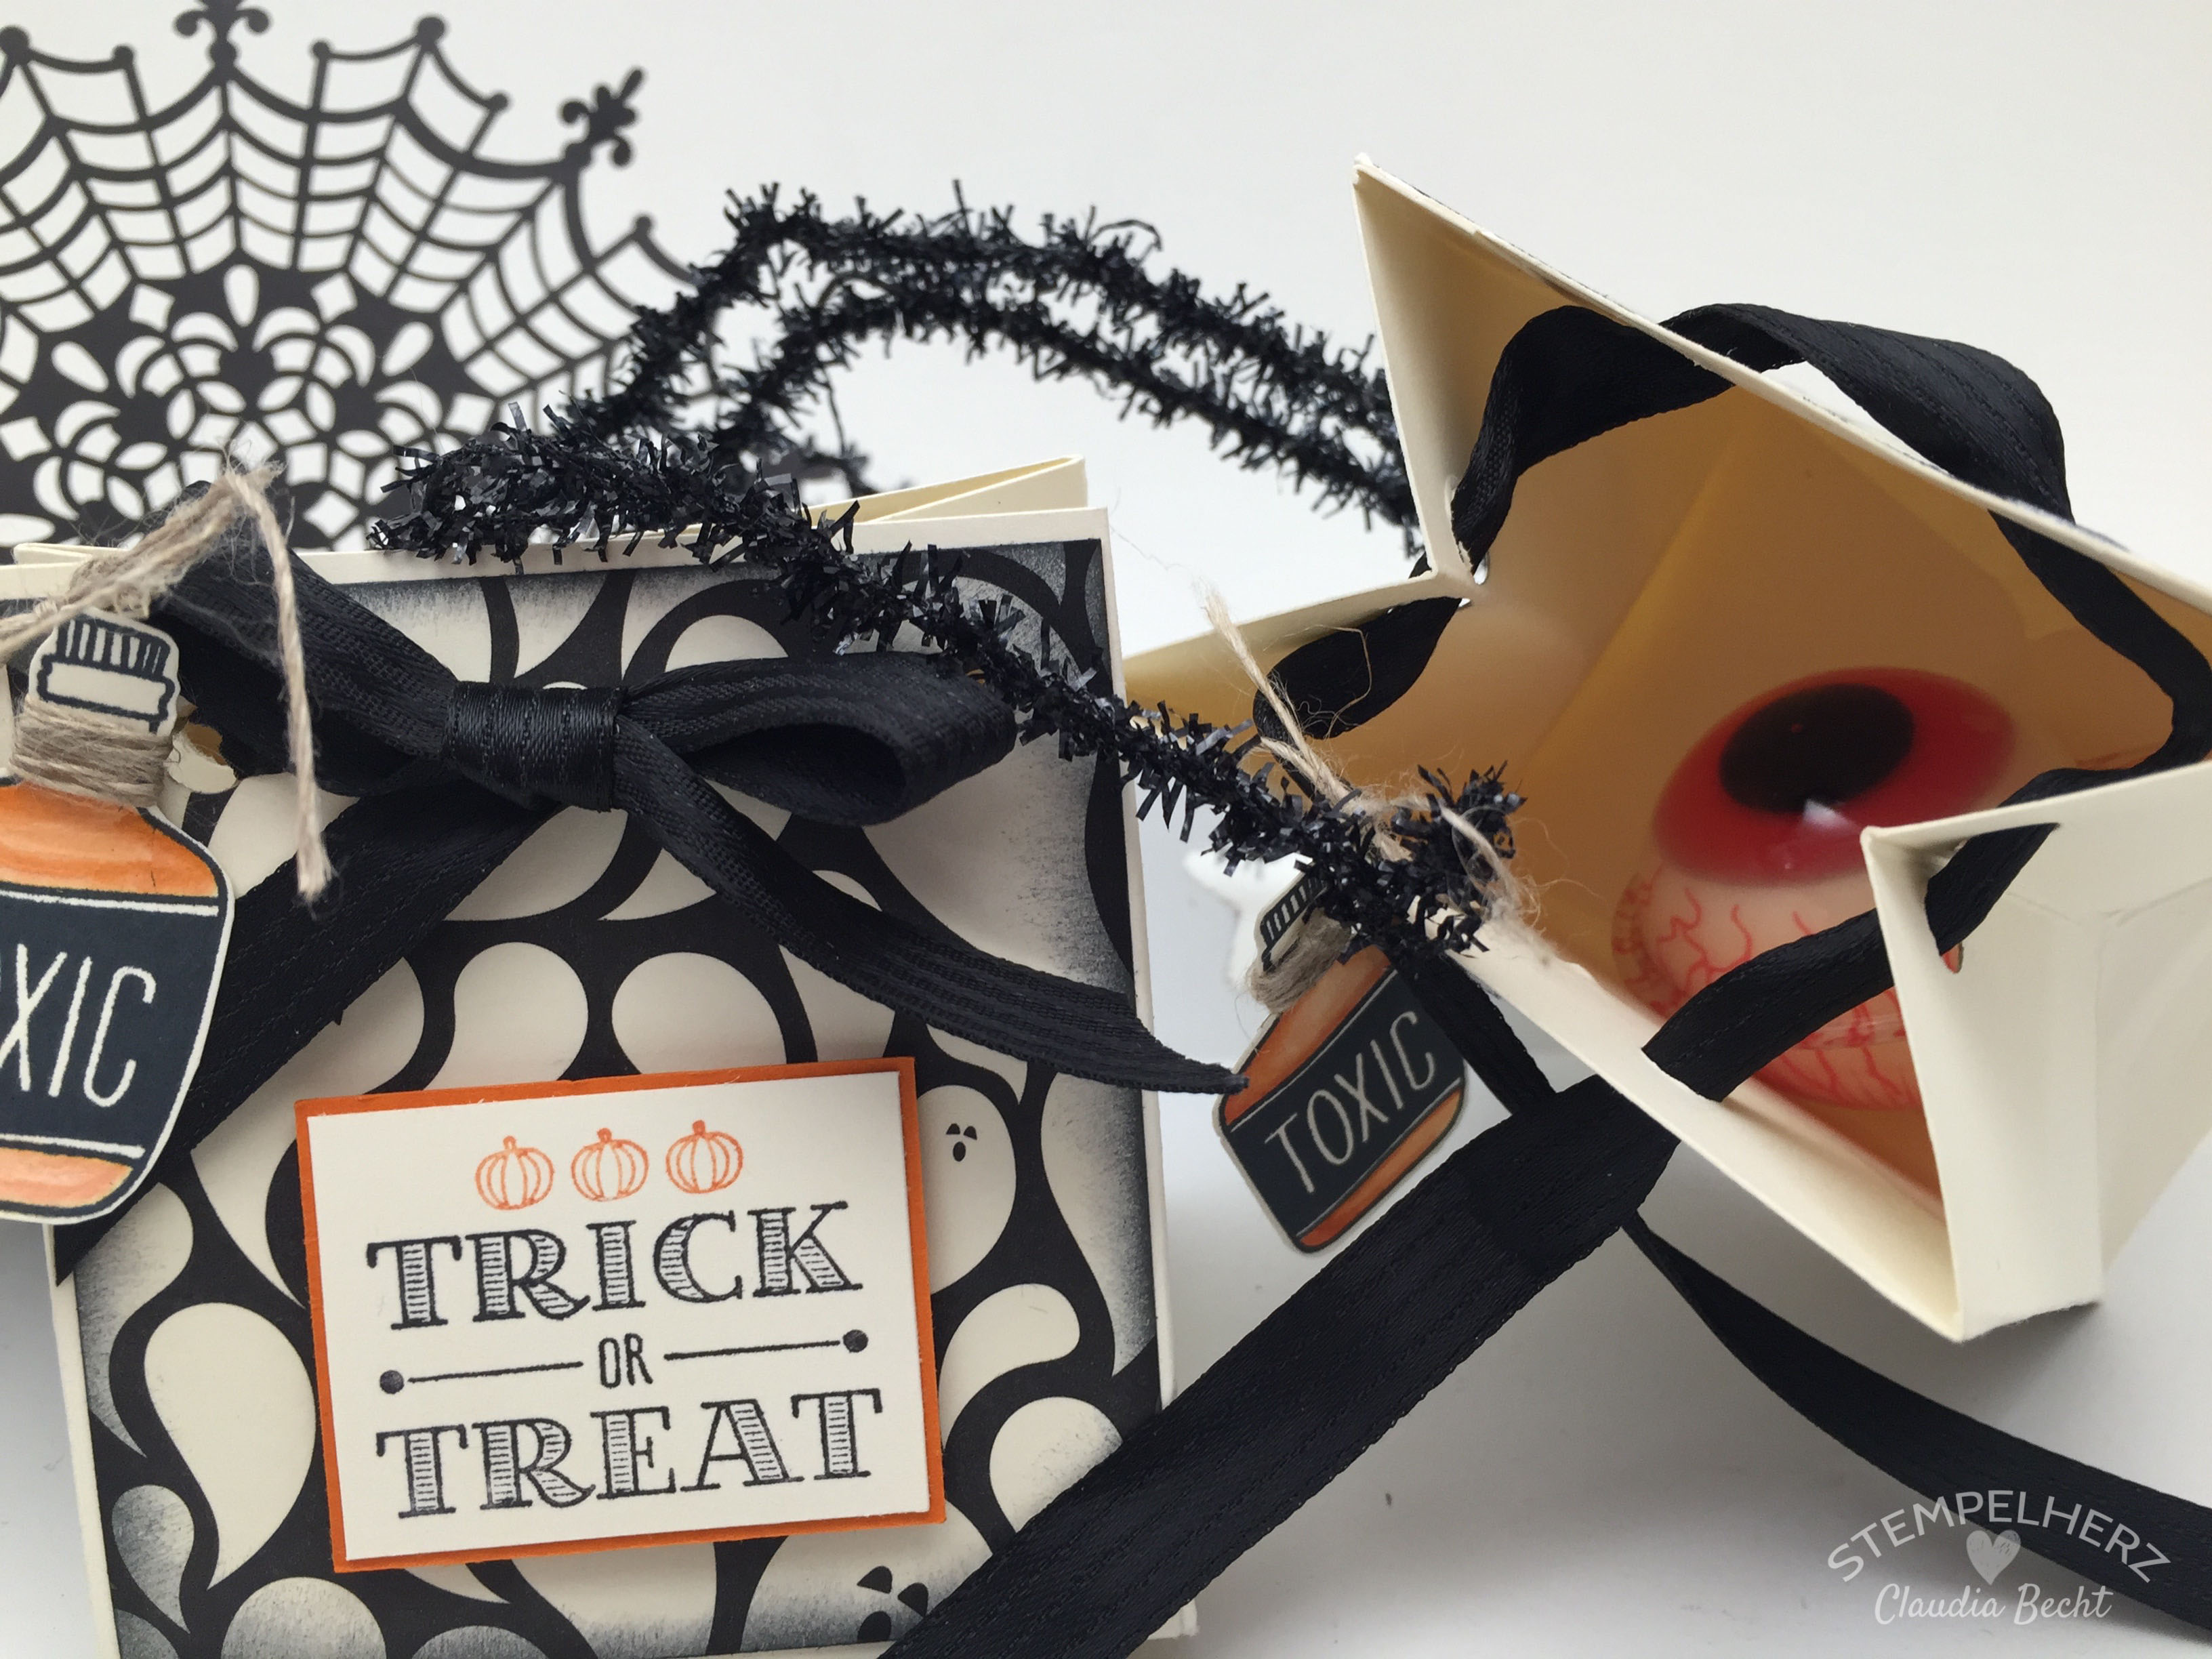 Stampin Up-Stempelherz-Verpackung-Box-Halloween-Trick or Treat-A Little Something-Sweet Hauntings-Halloween-Verpackung 05